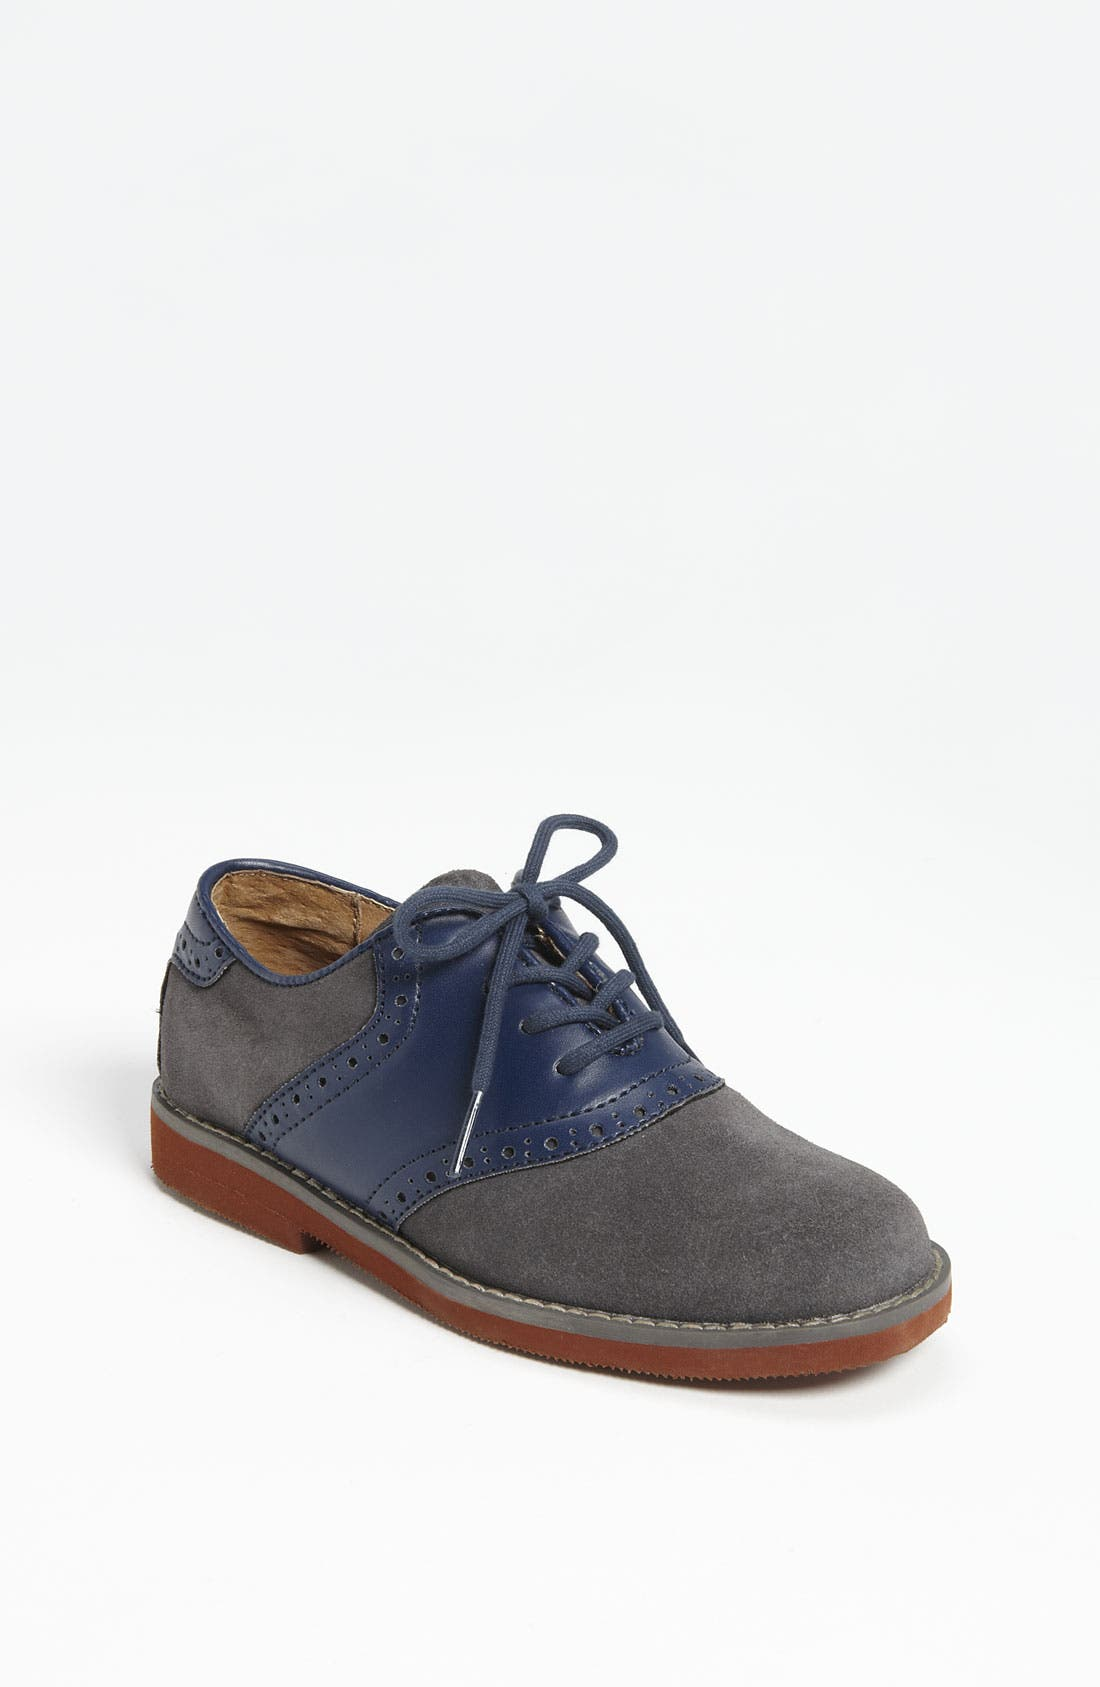 Florsheim 'Kennett' Oxford (Toddler, Little Kid & Big Kid)